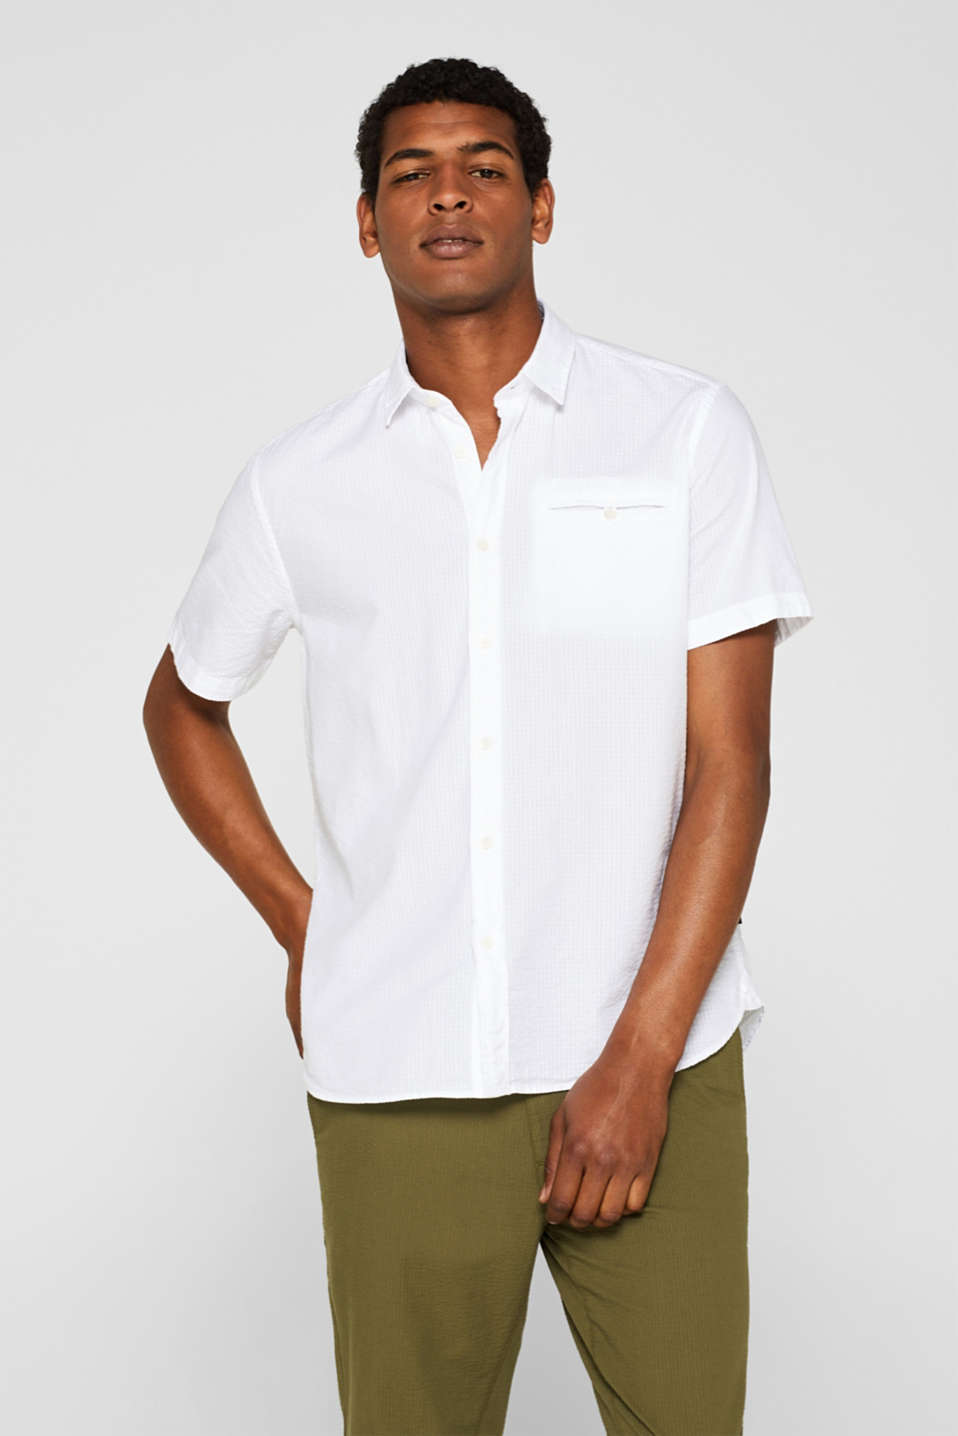 Esprit - Short-sleeved seersucker shirt, 100% cotton